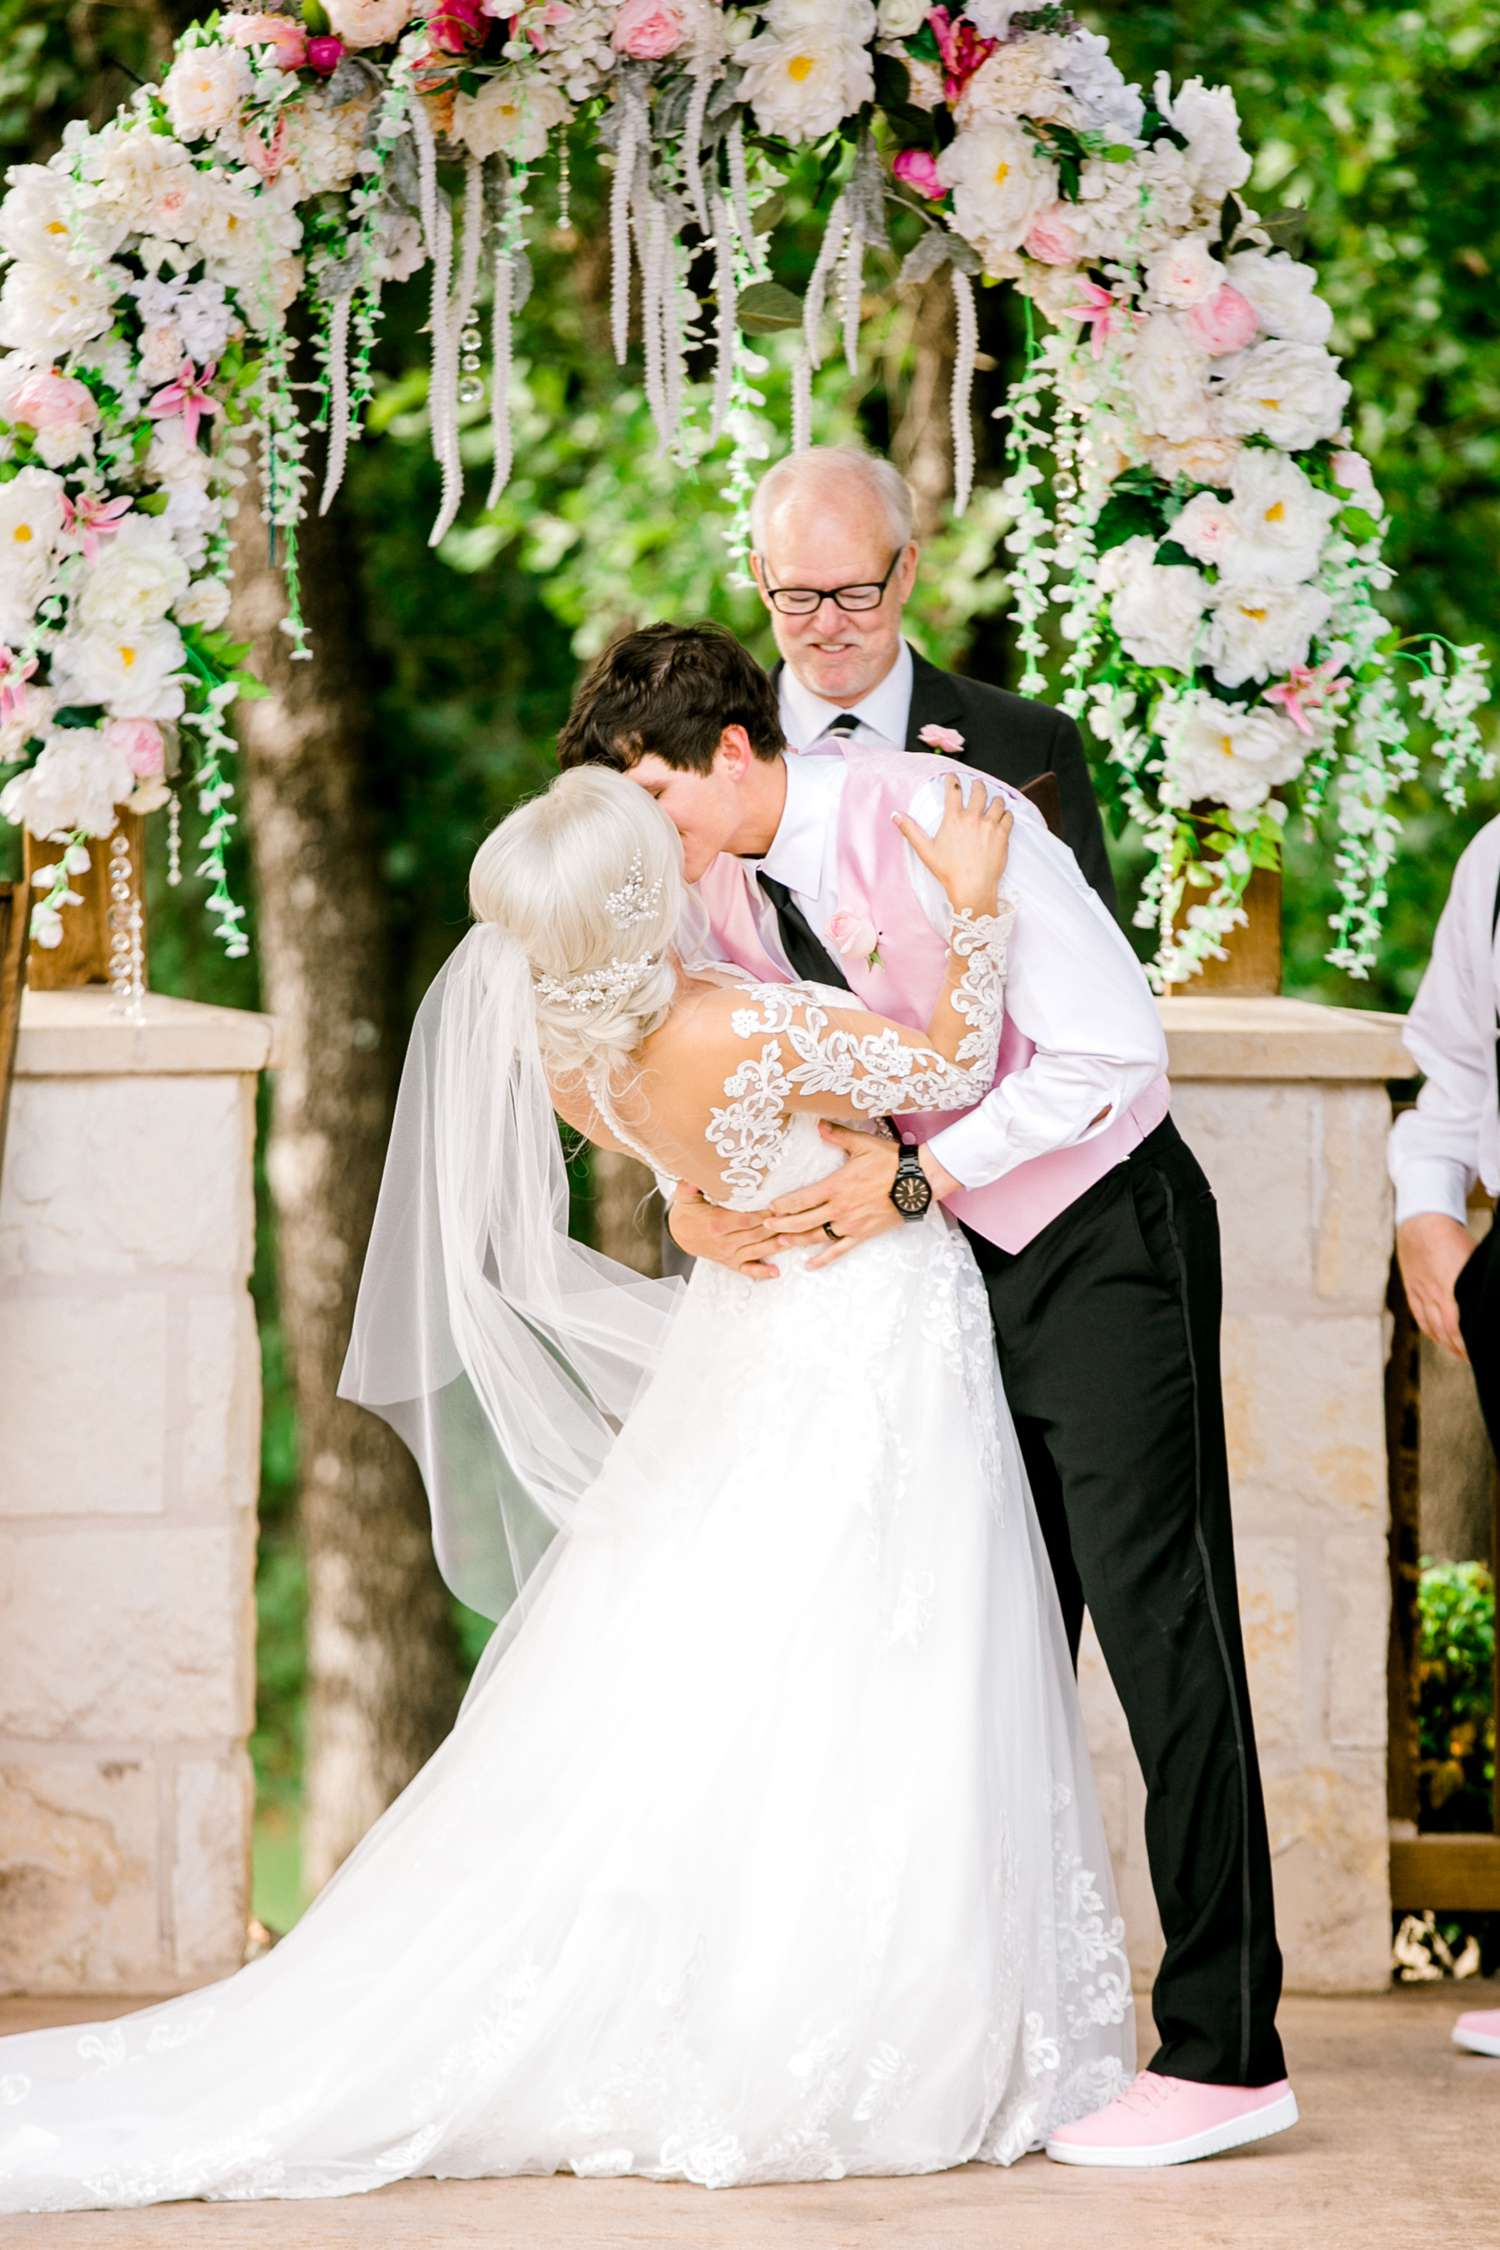 JESSICA+LYLE+NEEL+THE_SPRINGS_EVENTS_WEDDING_OKLAHOMA_ALLEEJ_PHOTOGRAPHER_0069.jpg